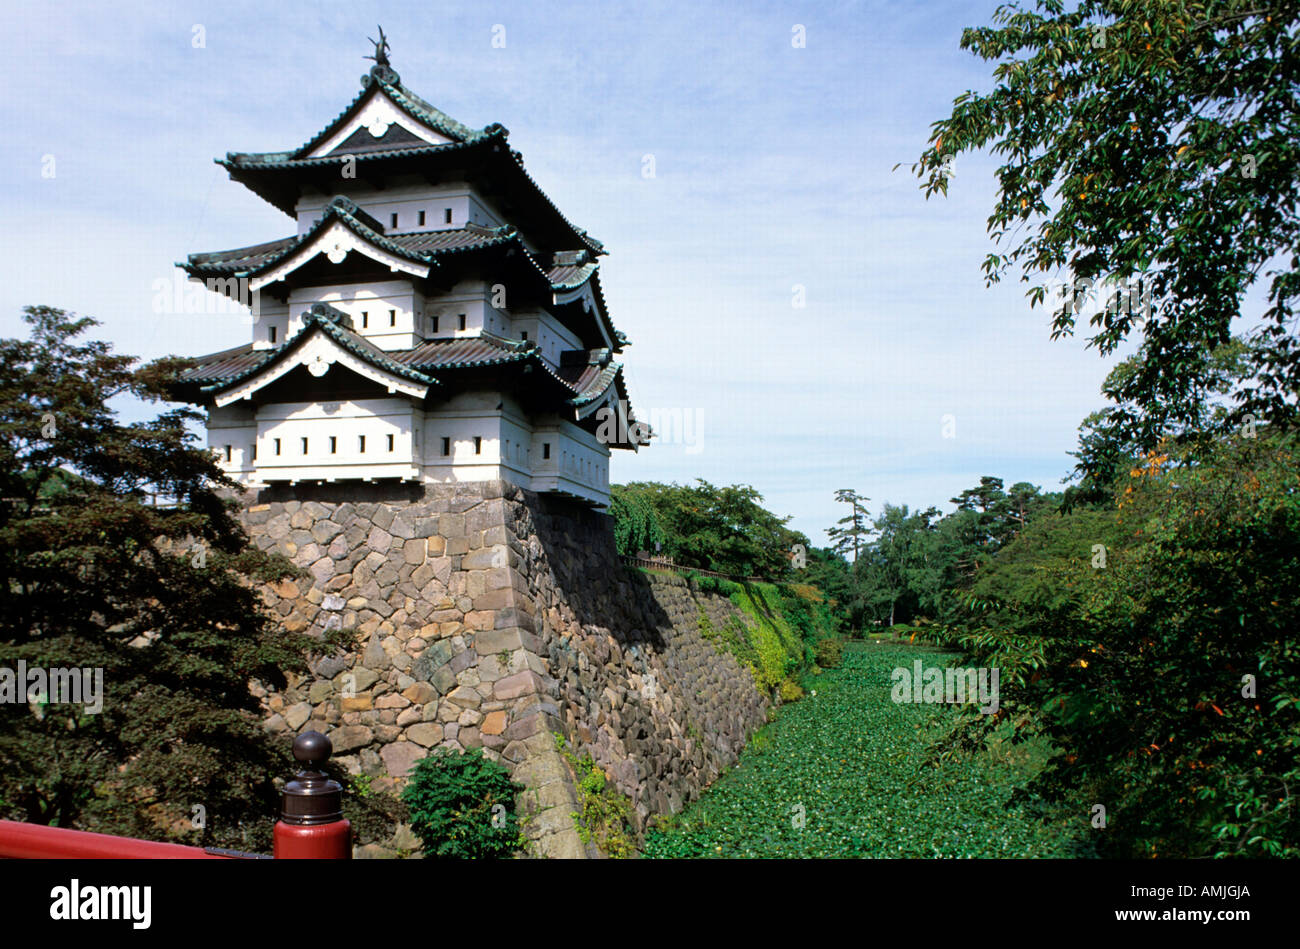 Le Japon, Tohoku, Hirosaki, Burg Photo Stock